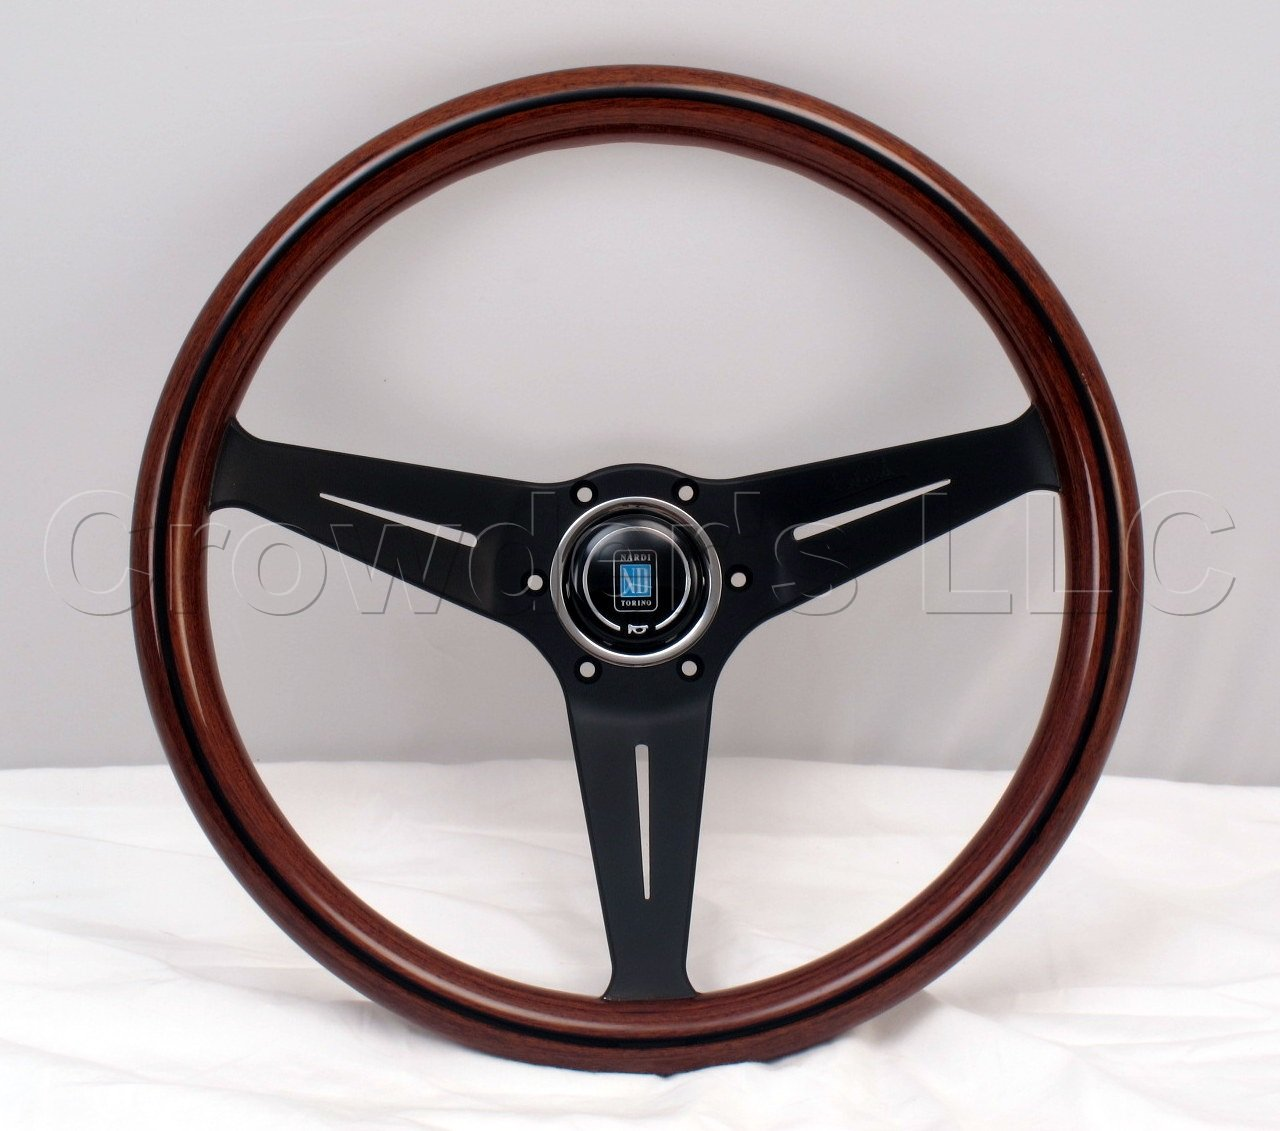 Fits Nardi Classic and Deep Corn Steering Wheels Nardi Steering Wheel Horn Button Mercedes Benz Double Contact Part # 4041.01.0204+4041.03.2428